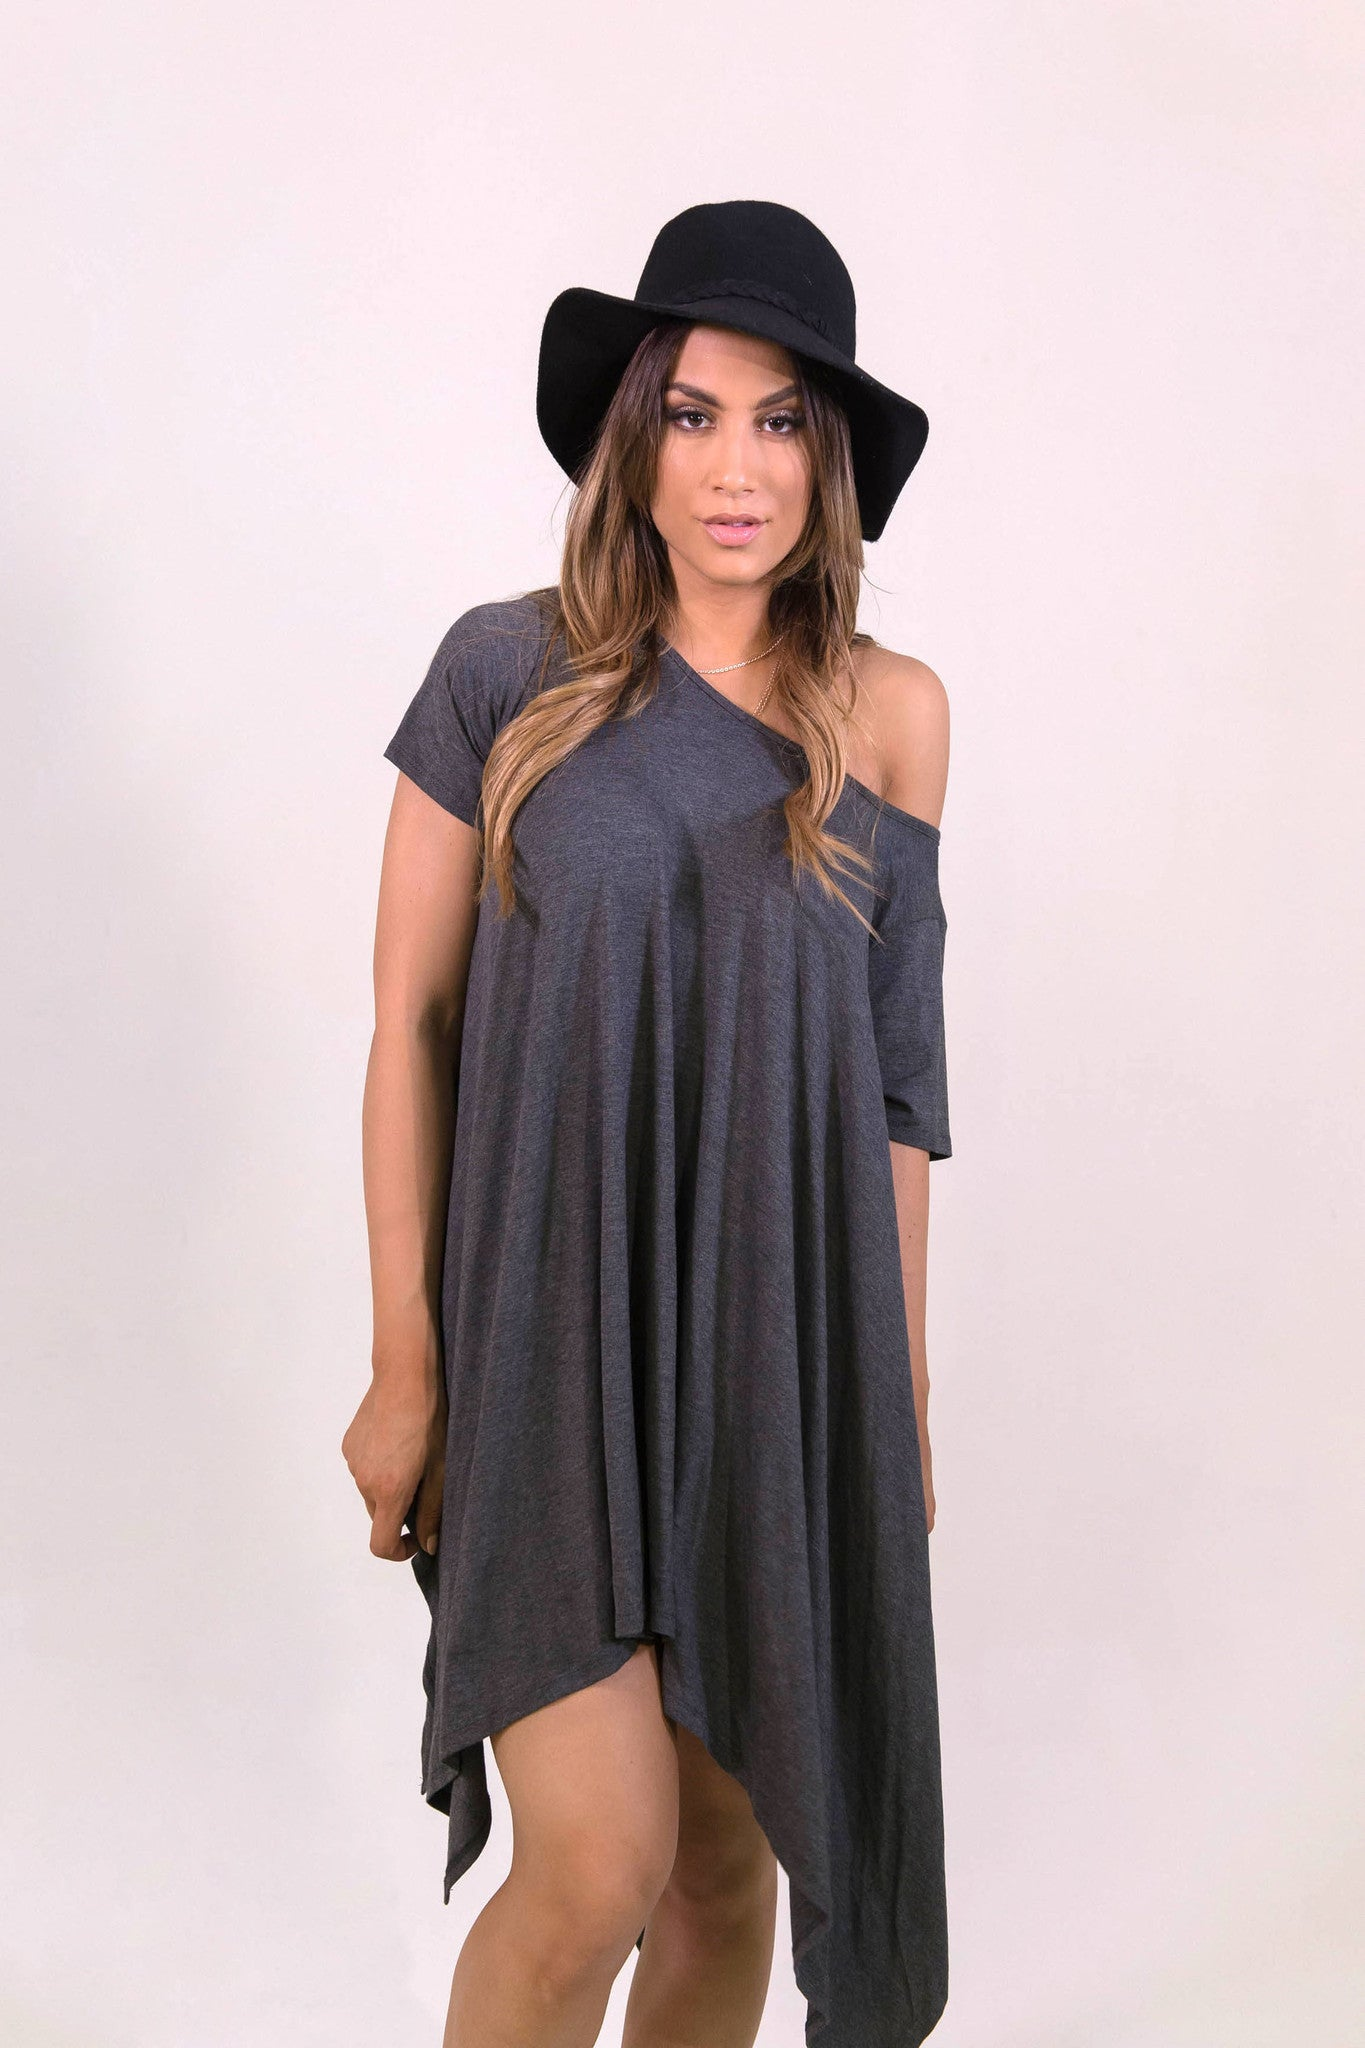 Up and Down Dress Grey - DRESSES - FAITH APPAREL - Free Vibrationz - 1